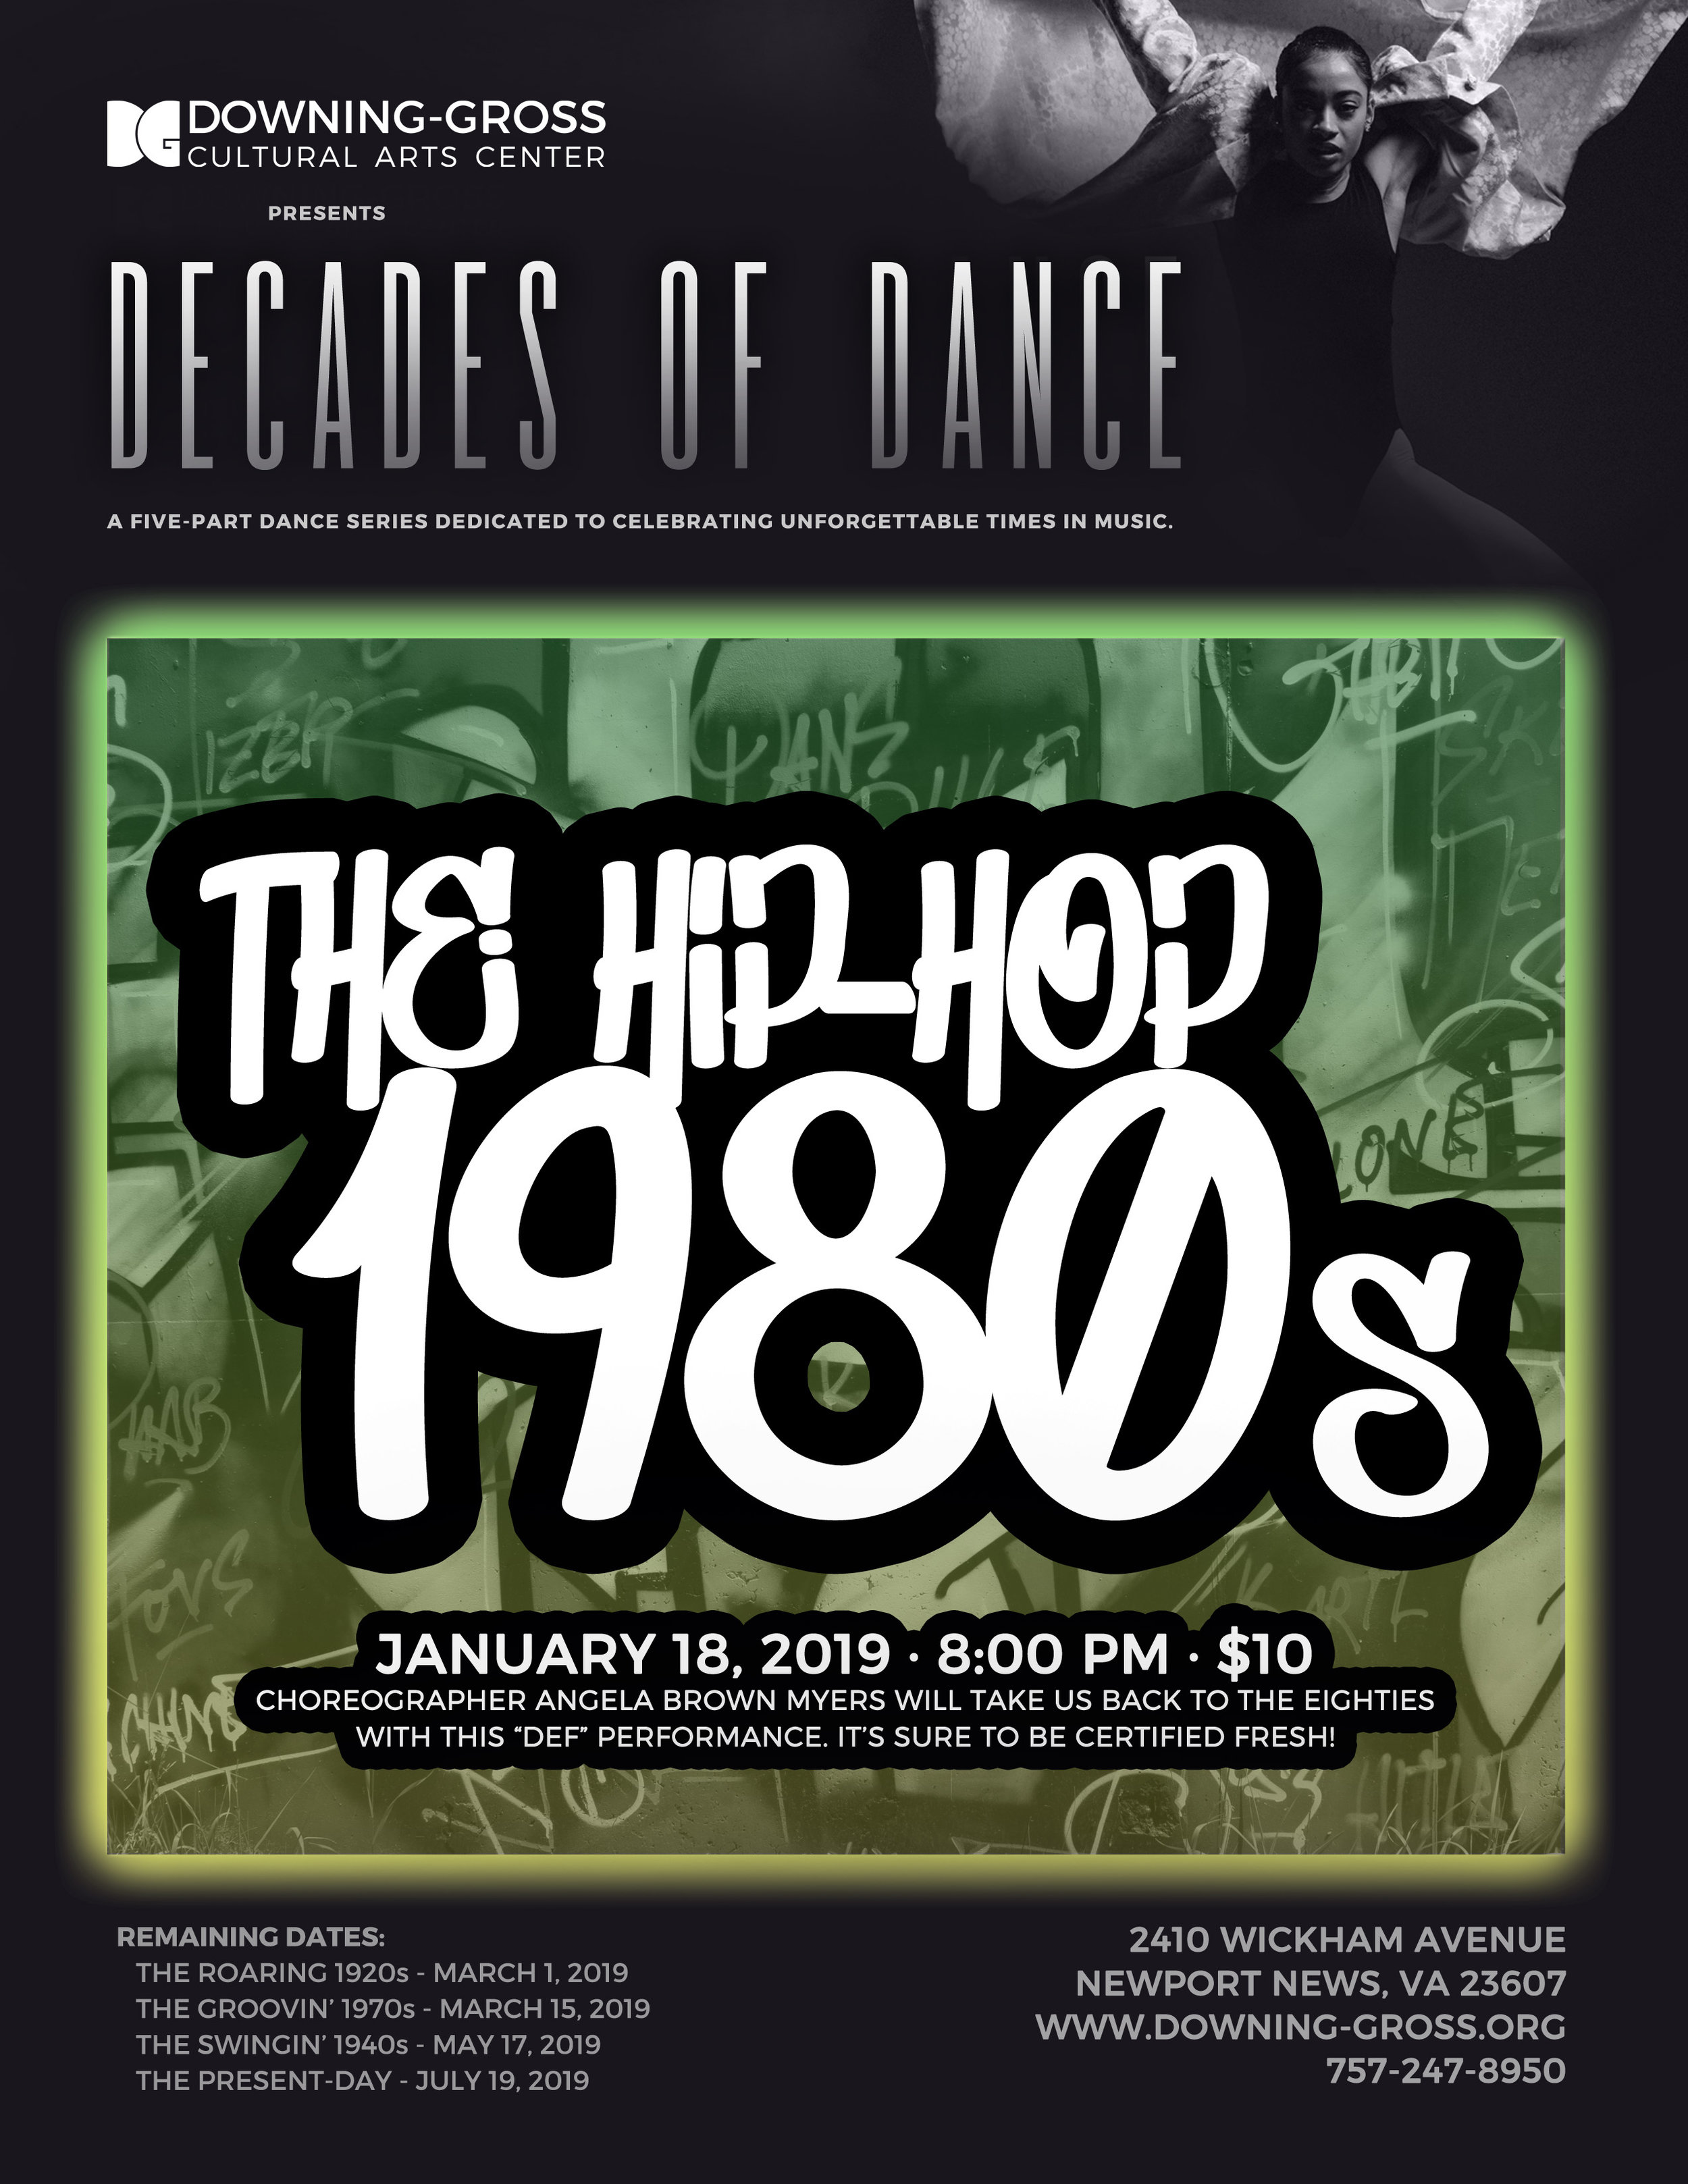 """Choreographer Angela Brown-Myers will take us back to the eighties with this """"def"""" performance. It's sure to be certified fresh!"""